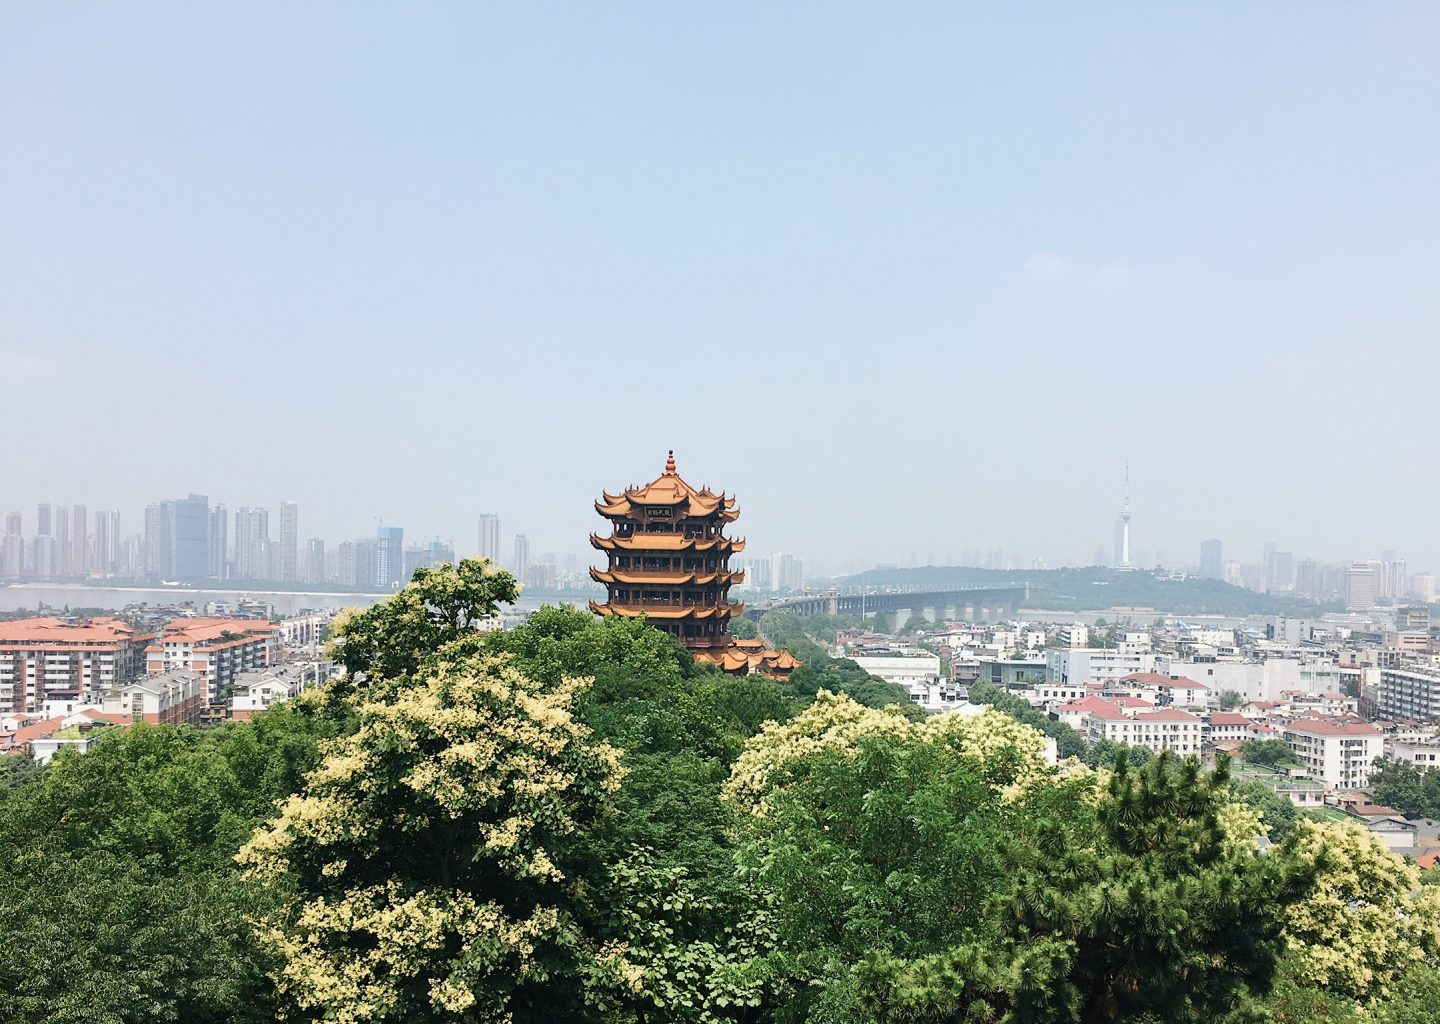 The Yellow Crane Tower in Wuhan, China!